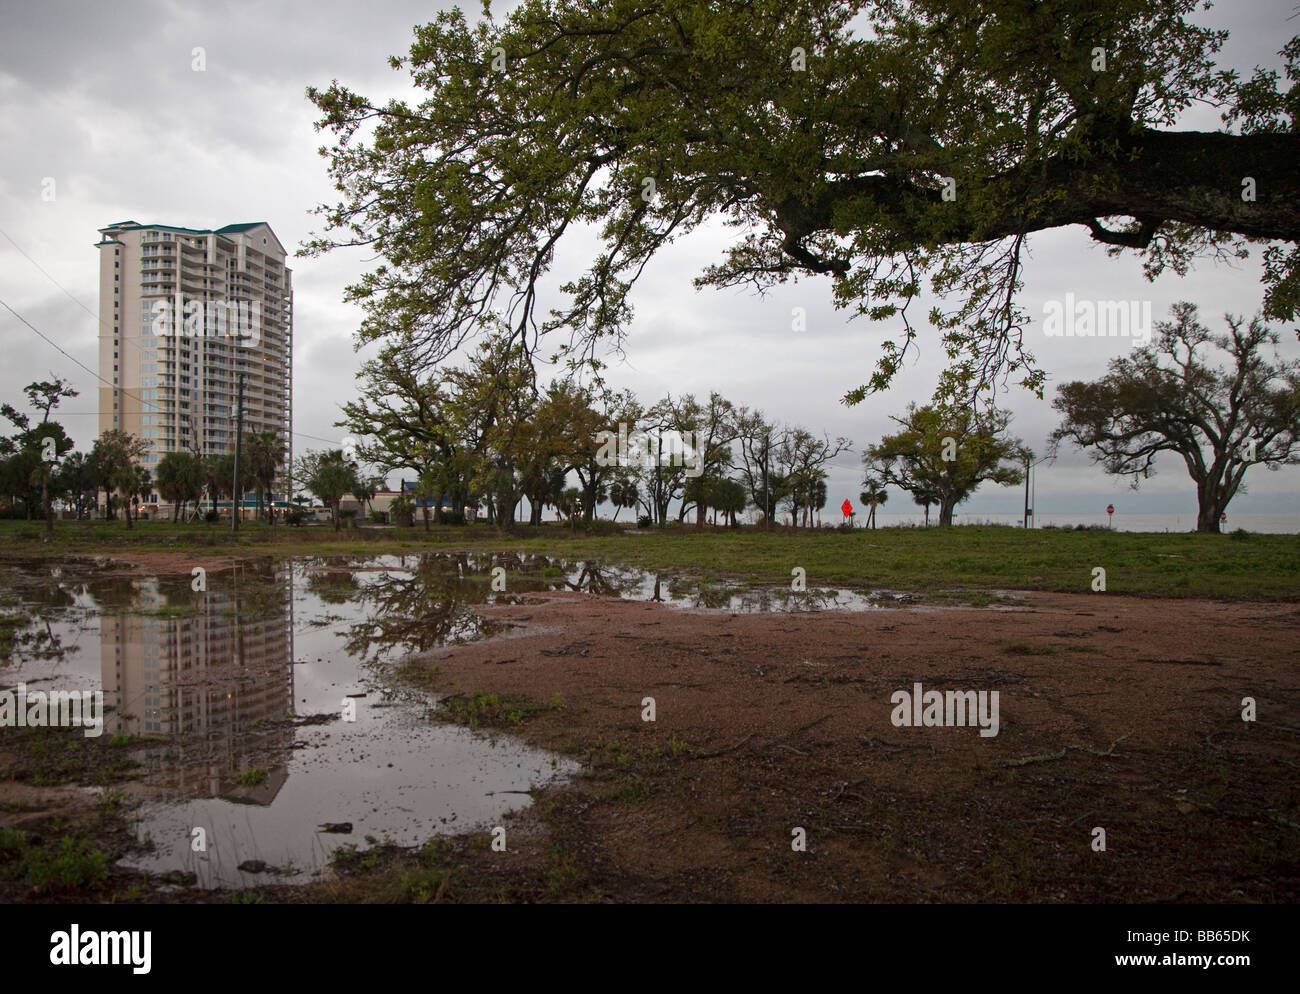 High rise condominiums replace homes and small businesses on coast after Hurricane Katrina - Stock Image